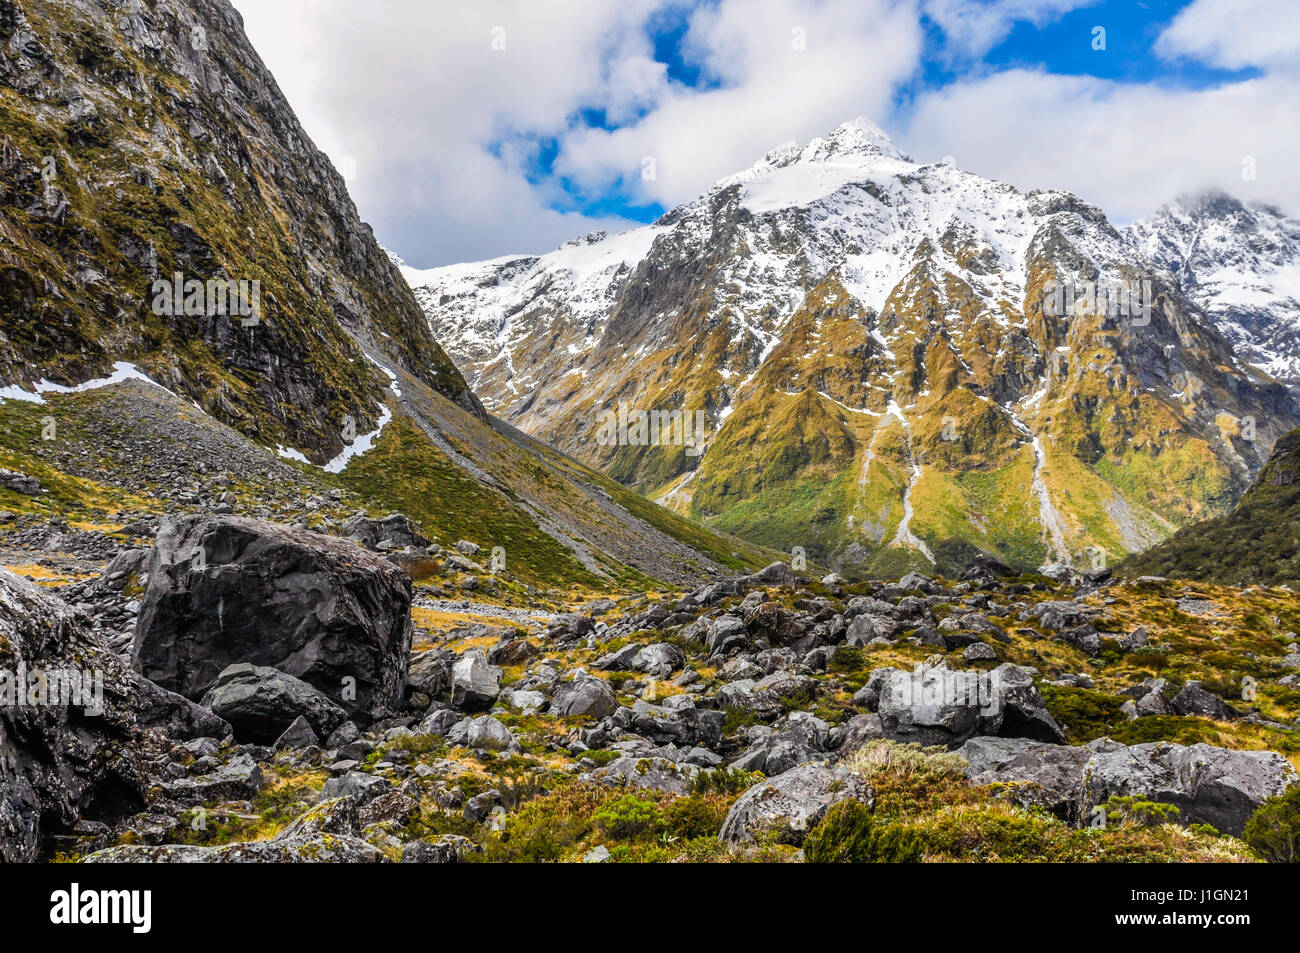 Snowy mountains in the Milford Road, one of the most beautiful scenic roads in New Zealand - Stock Image